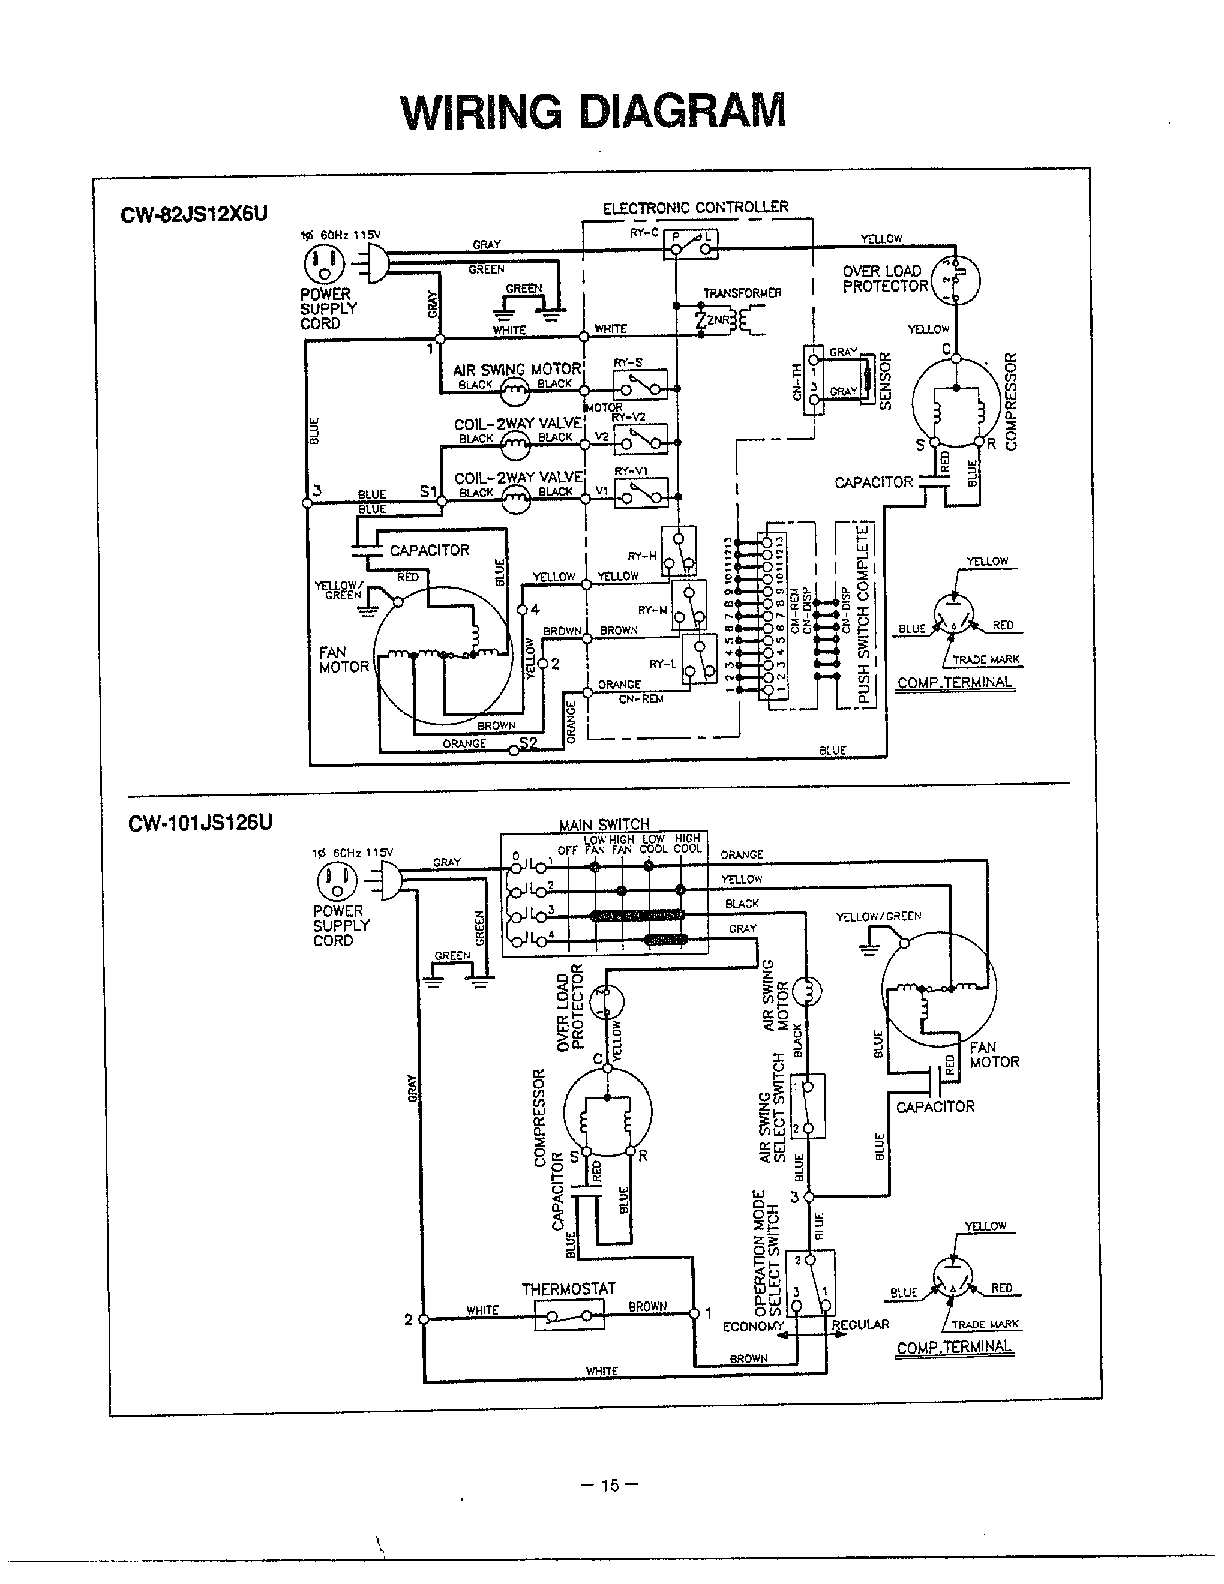 Dub subwoofer wiring diagram